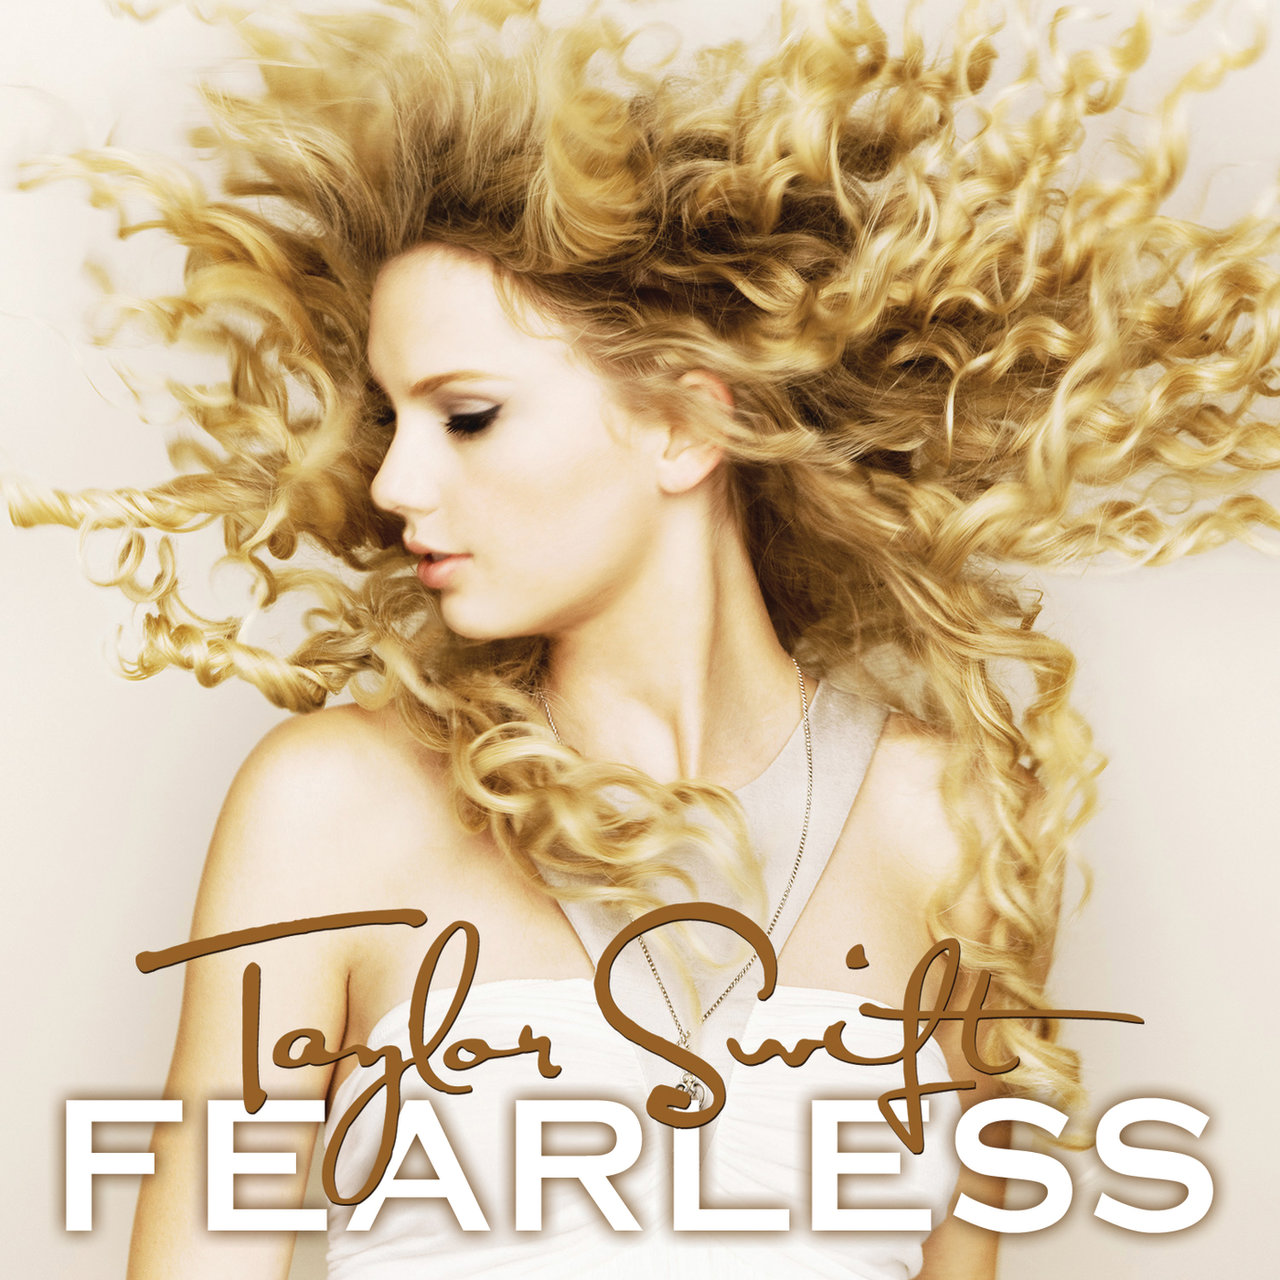 Fearless (iTunes version)